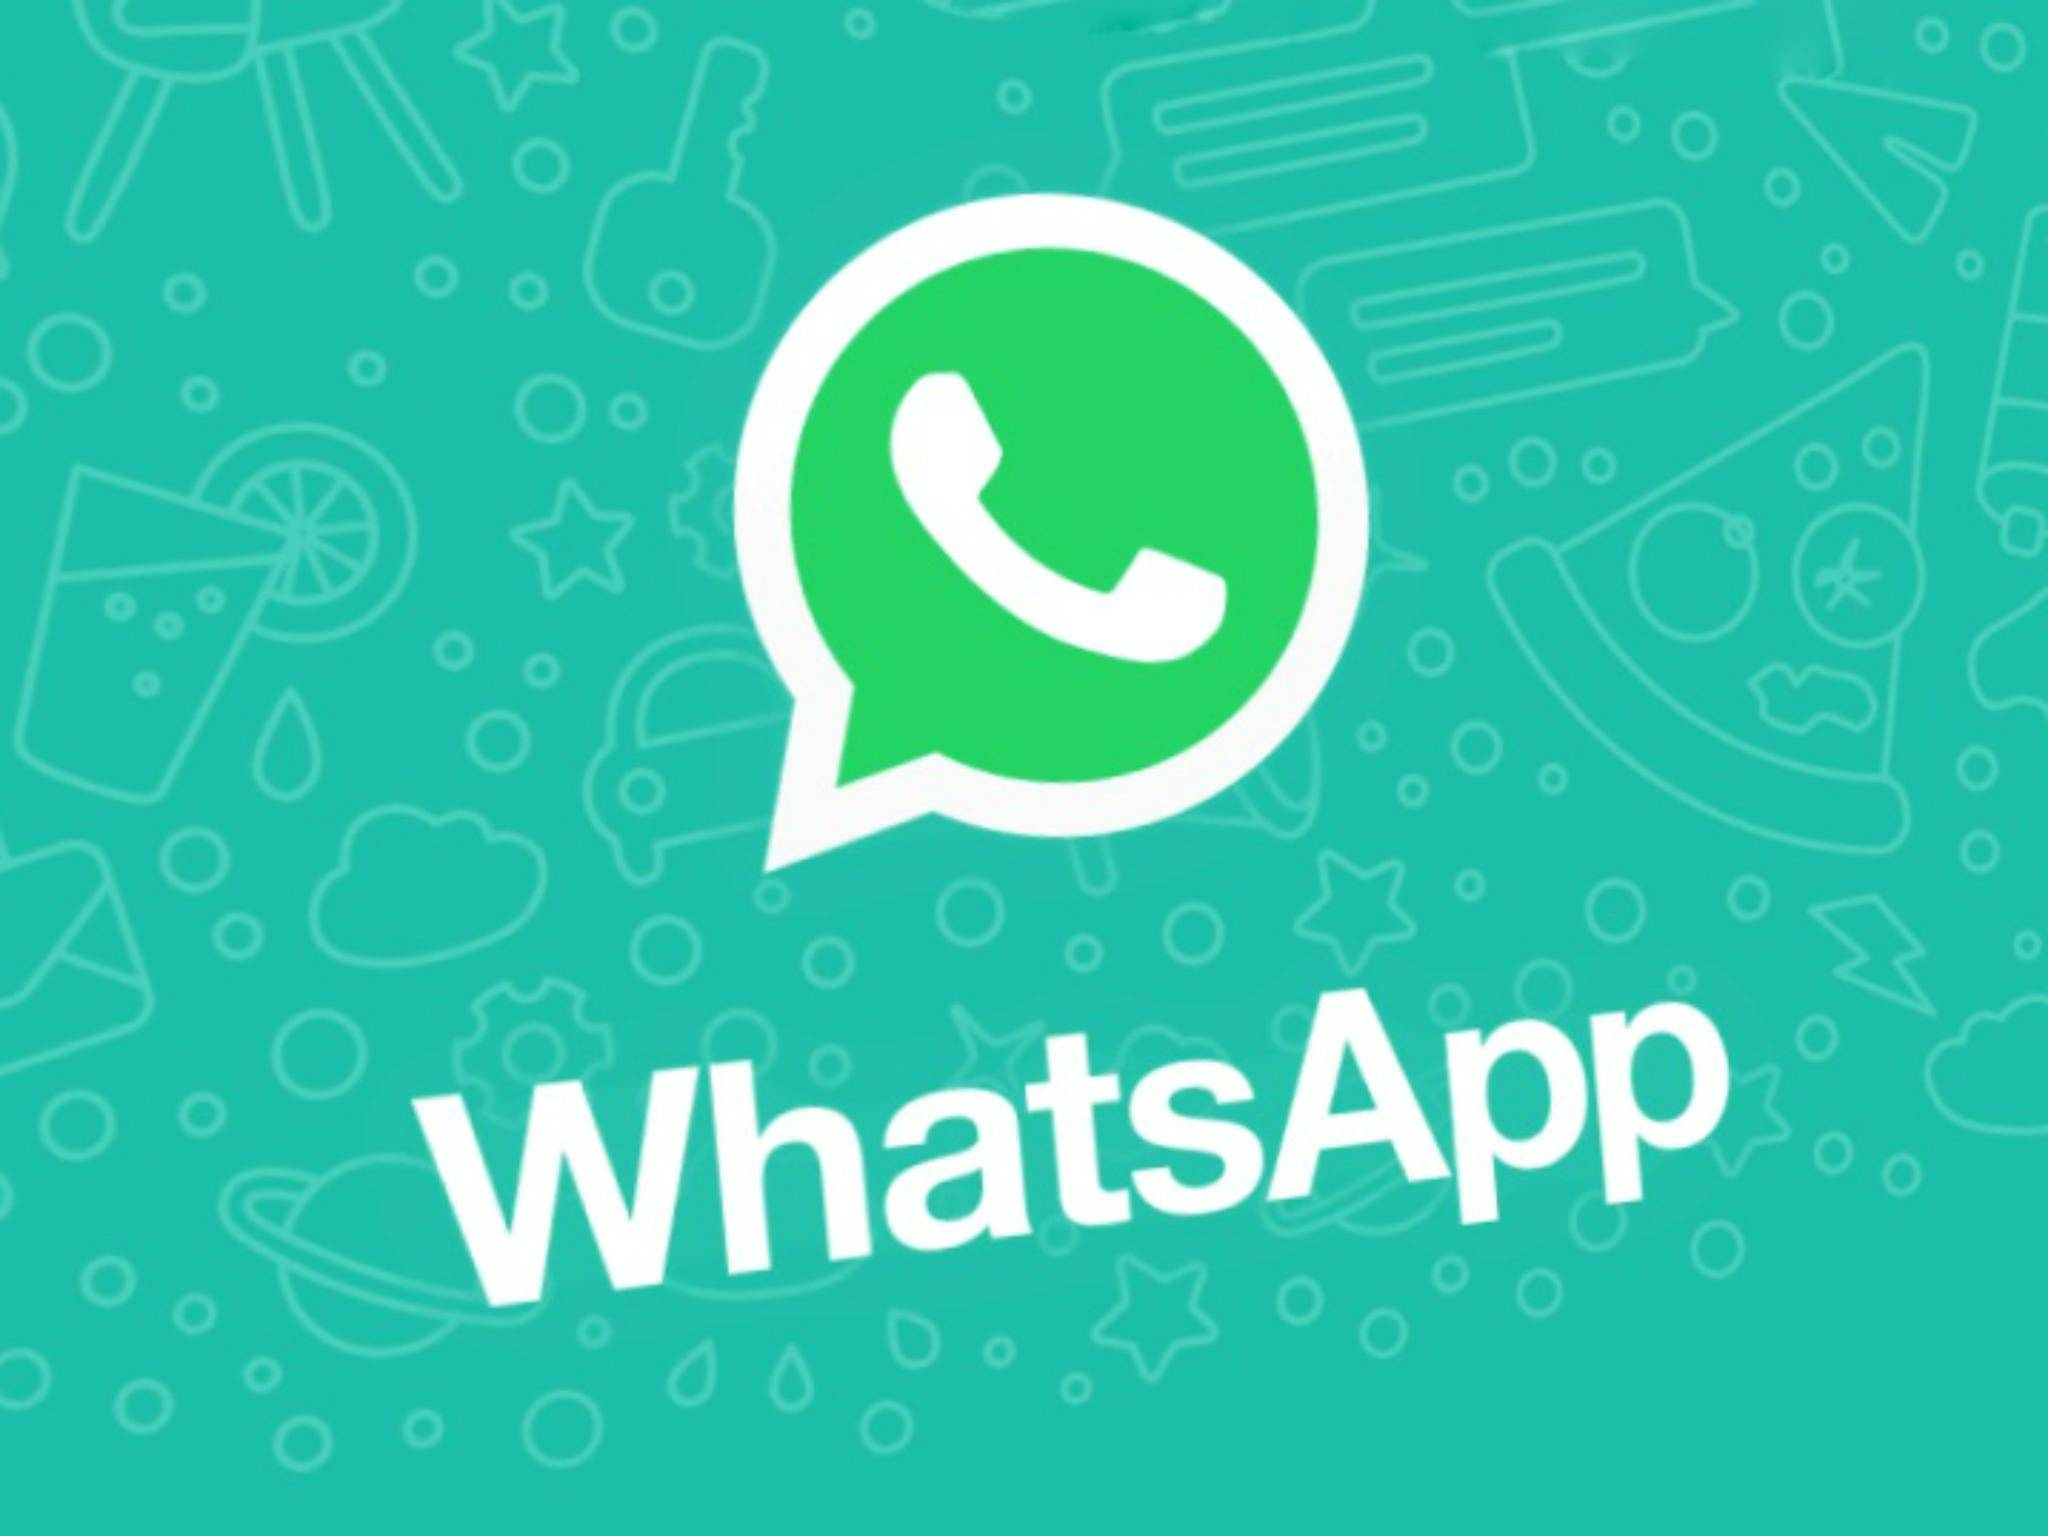 WhatsApp's deleted messages can still be read: Here's how it works